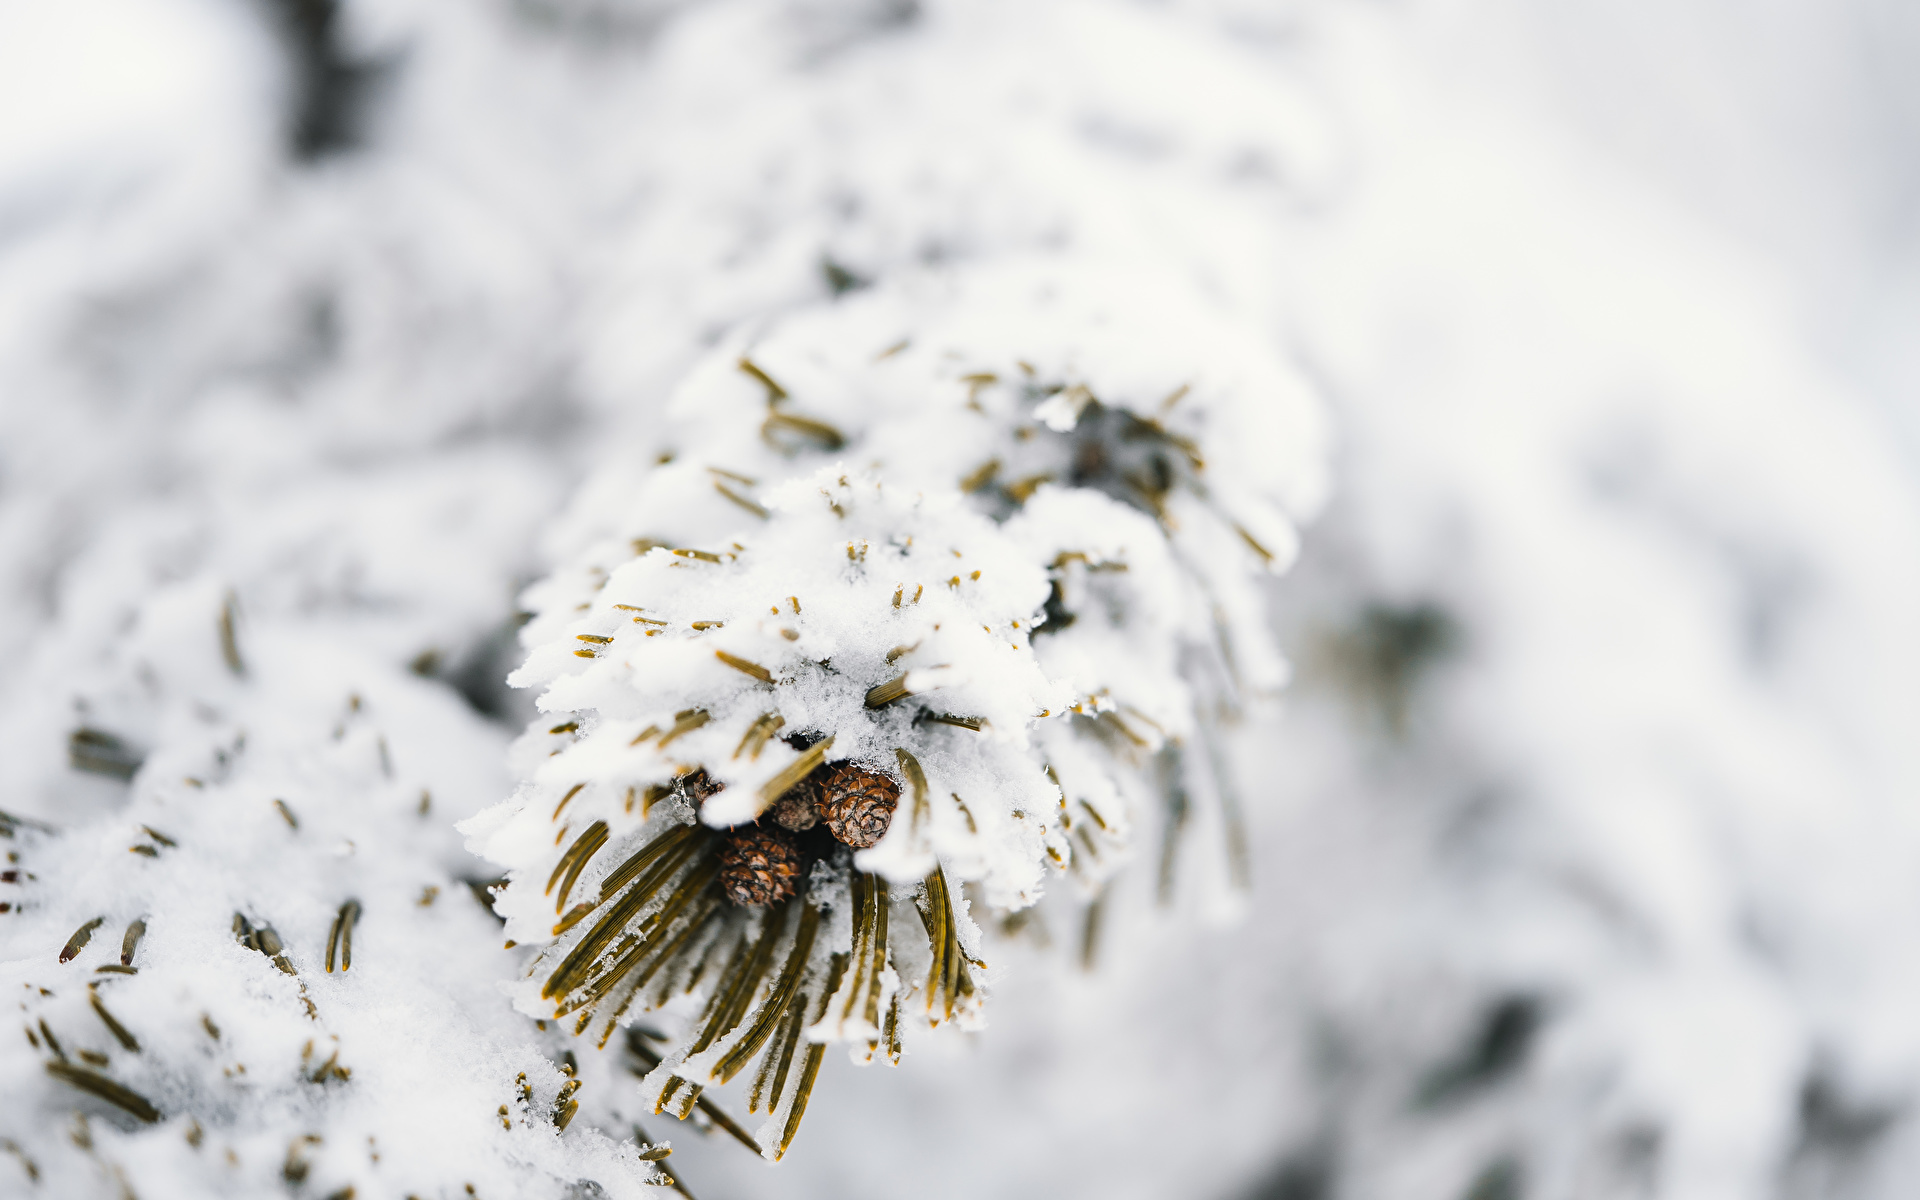 Desktop Wallpapers Bokeh Winter Nature Snow Branches 1920x1200 blurred background